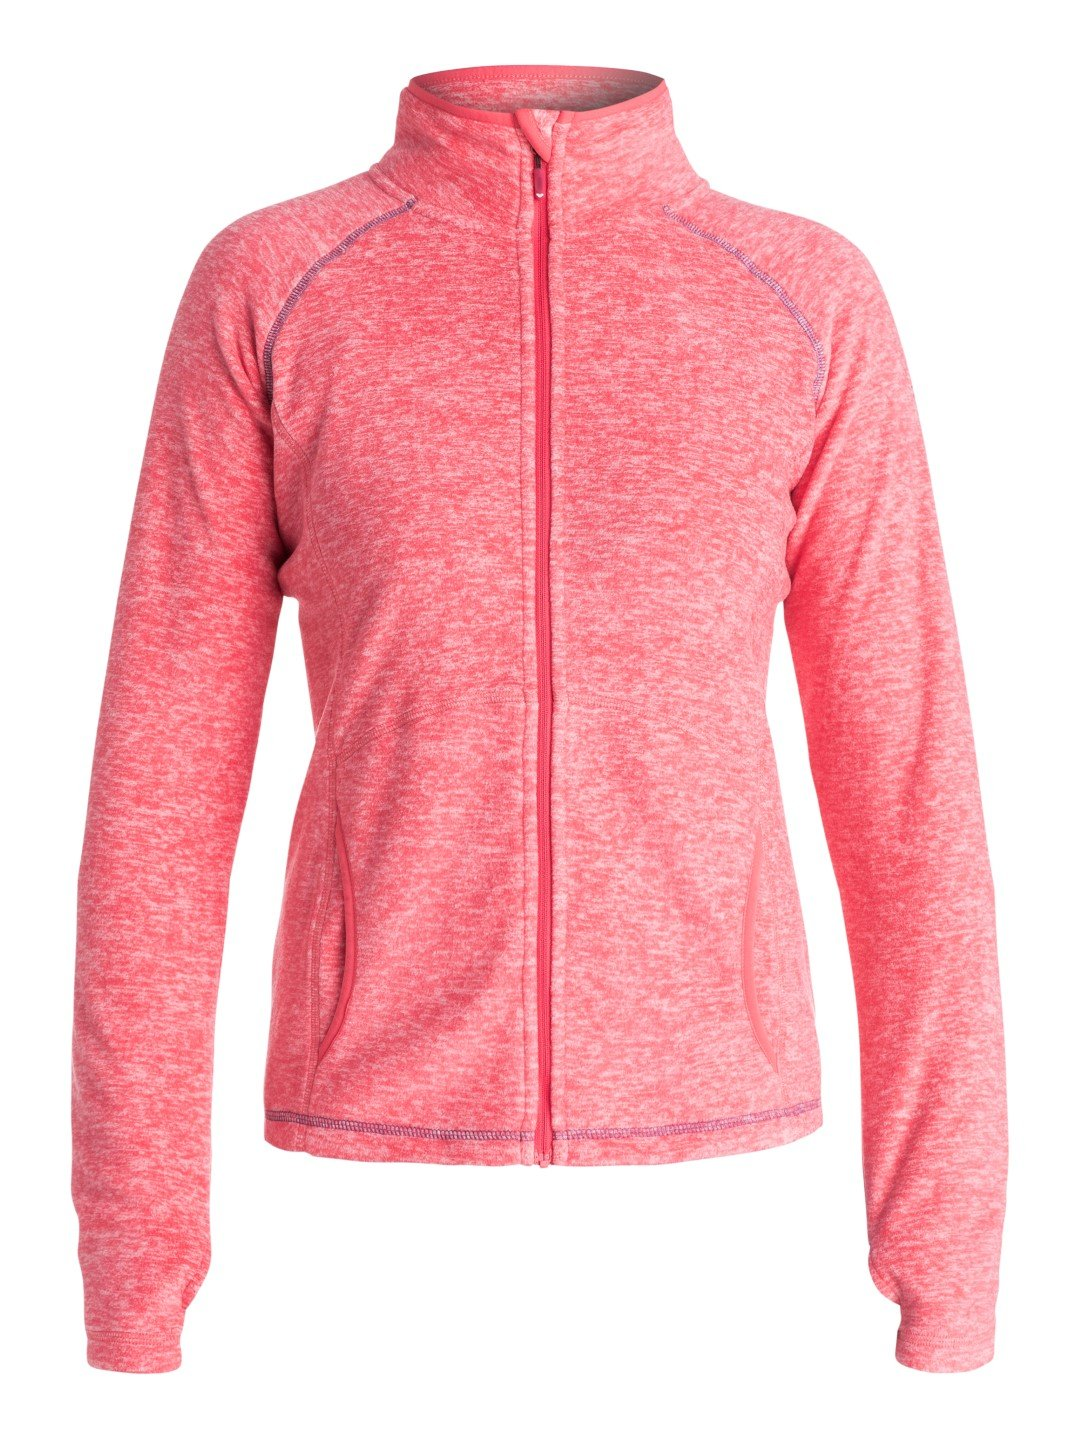 Roxy Damen Fleece Top HARMONY J OTLR